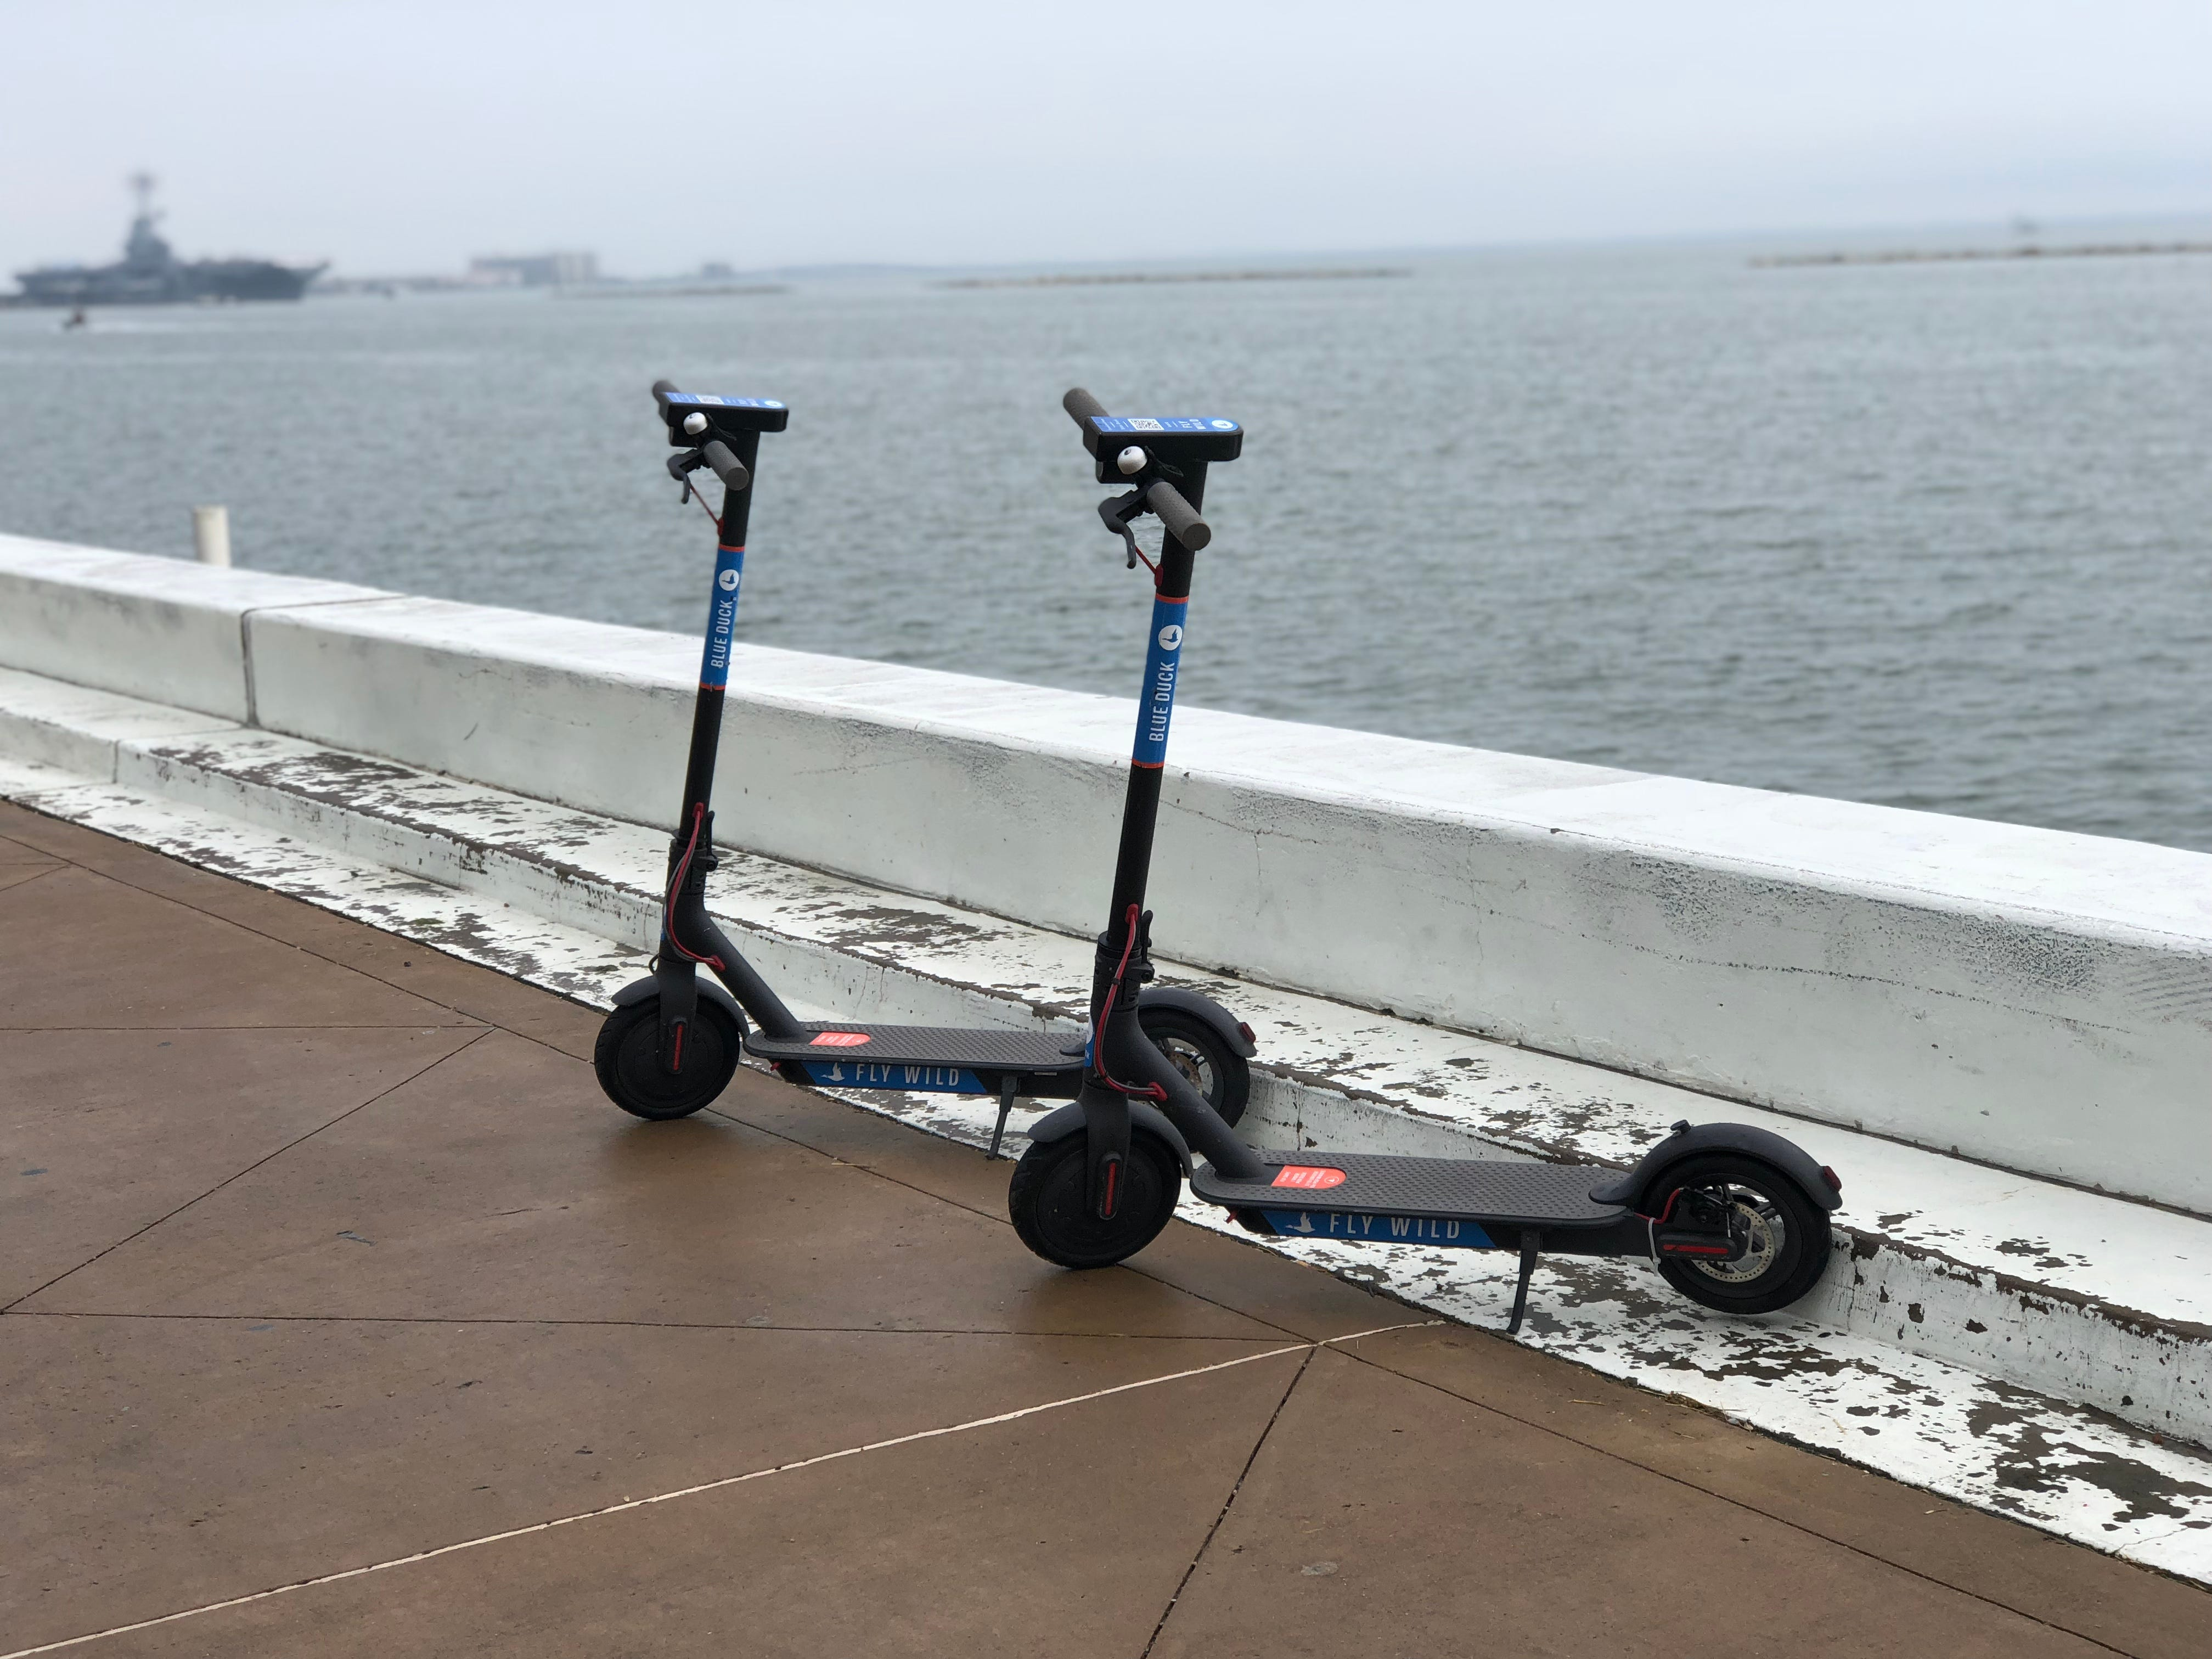 Colleges regulate use of electric scooters on campuses